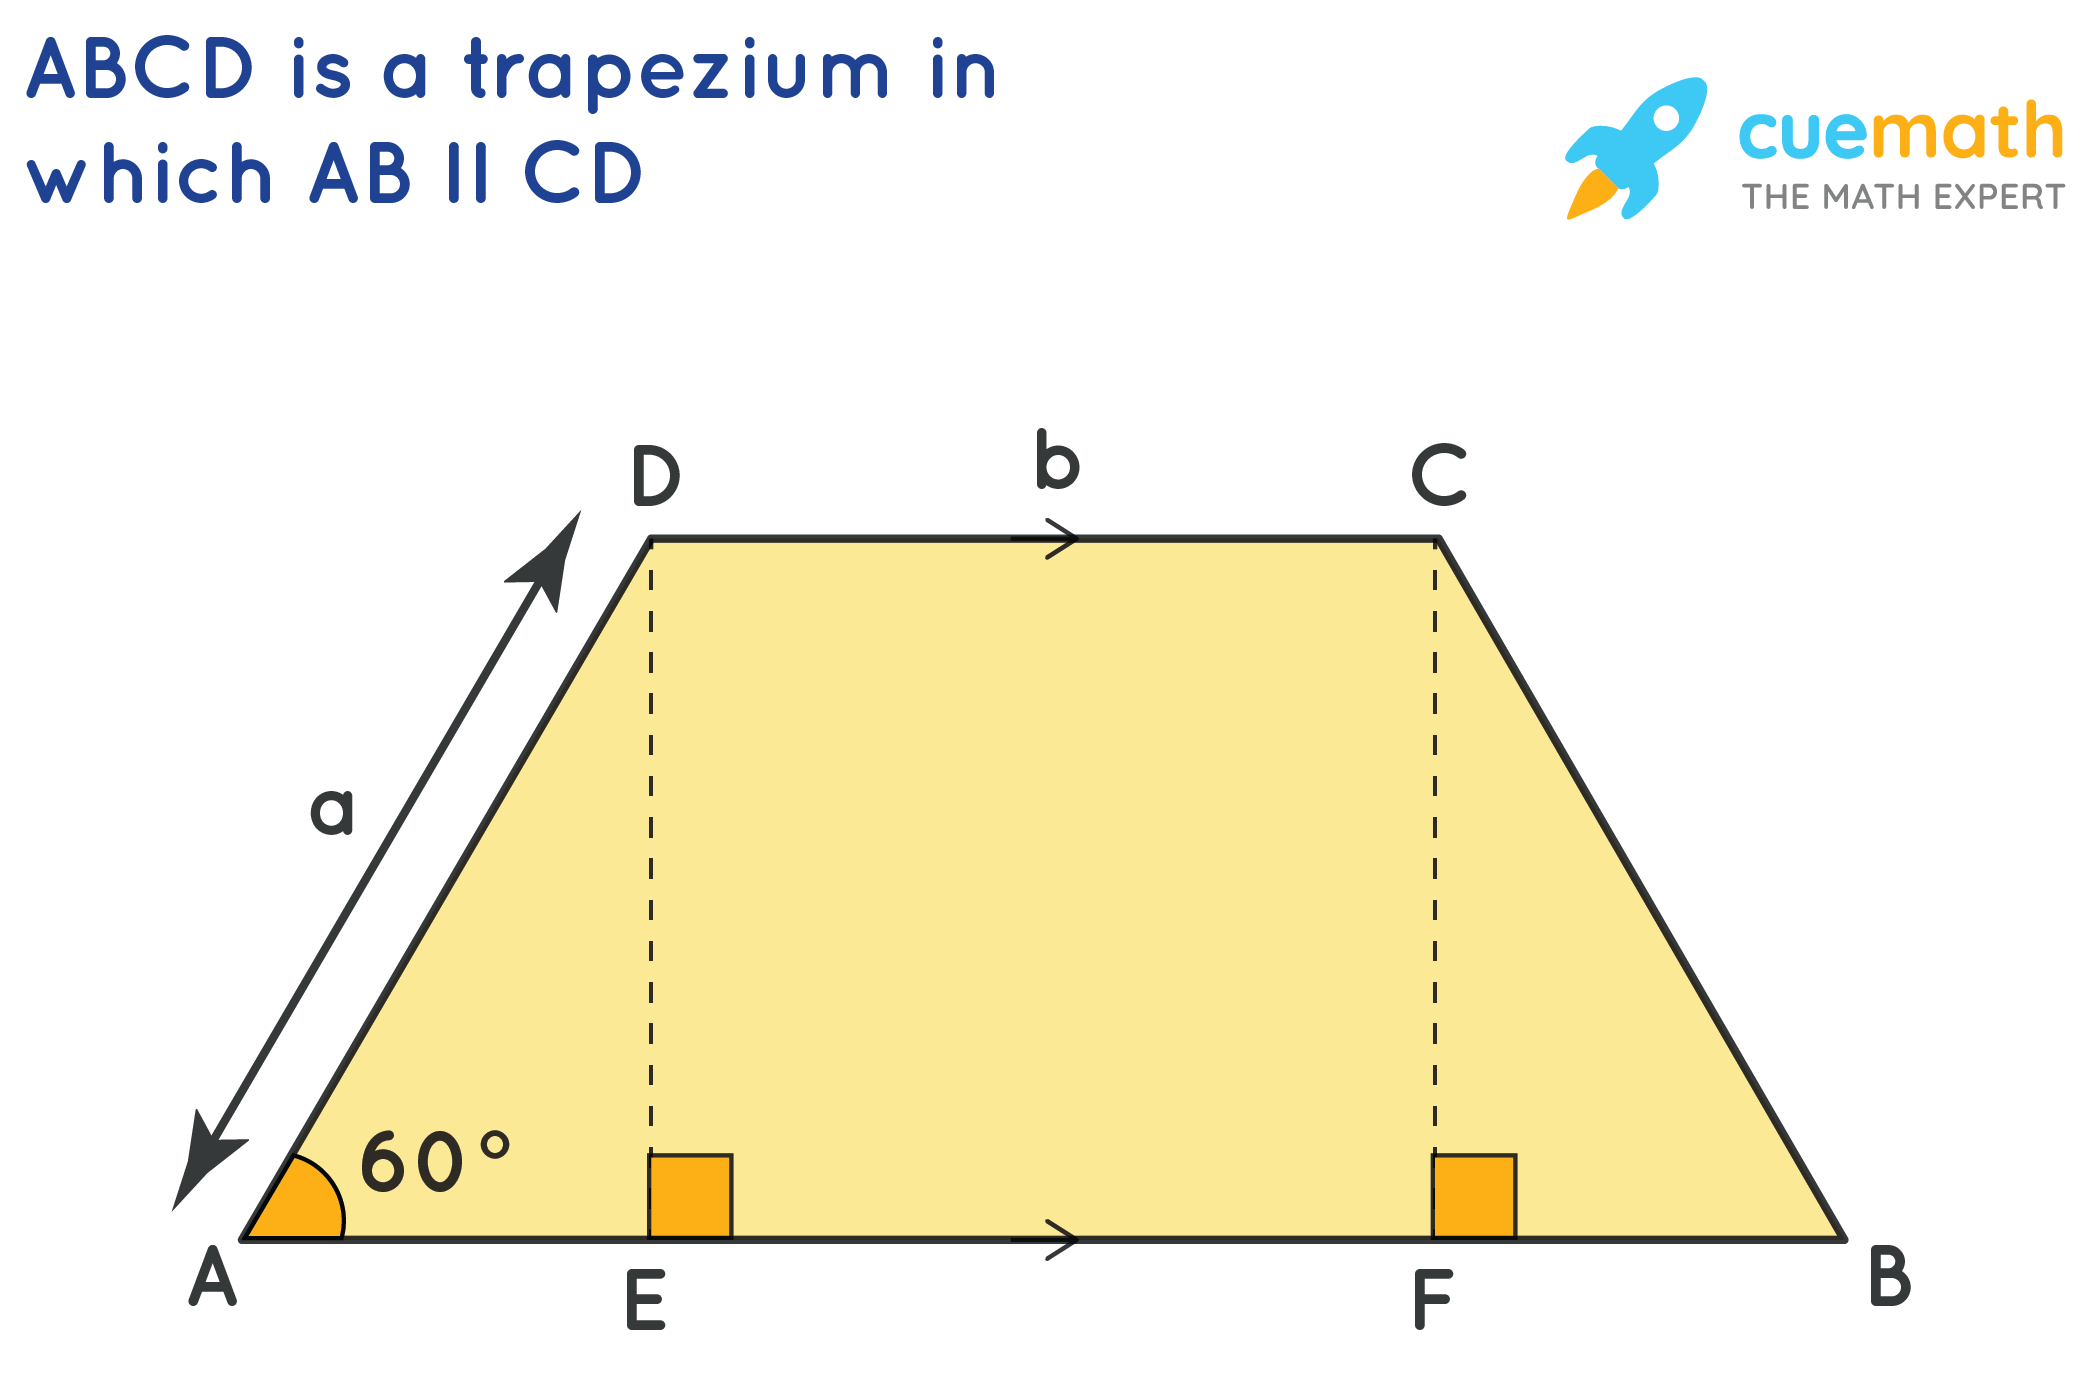 ABCD is a trapezium in which AB II CD